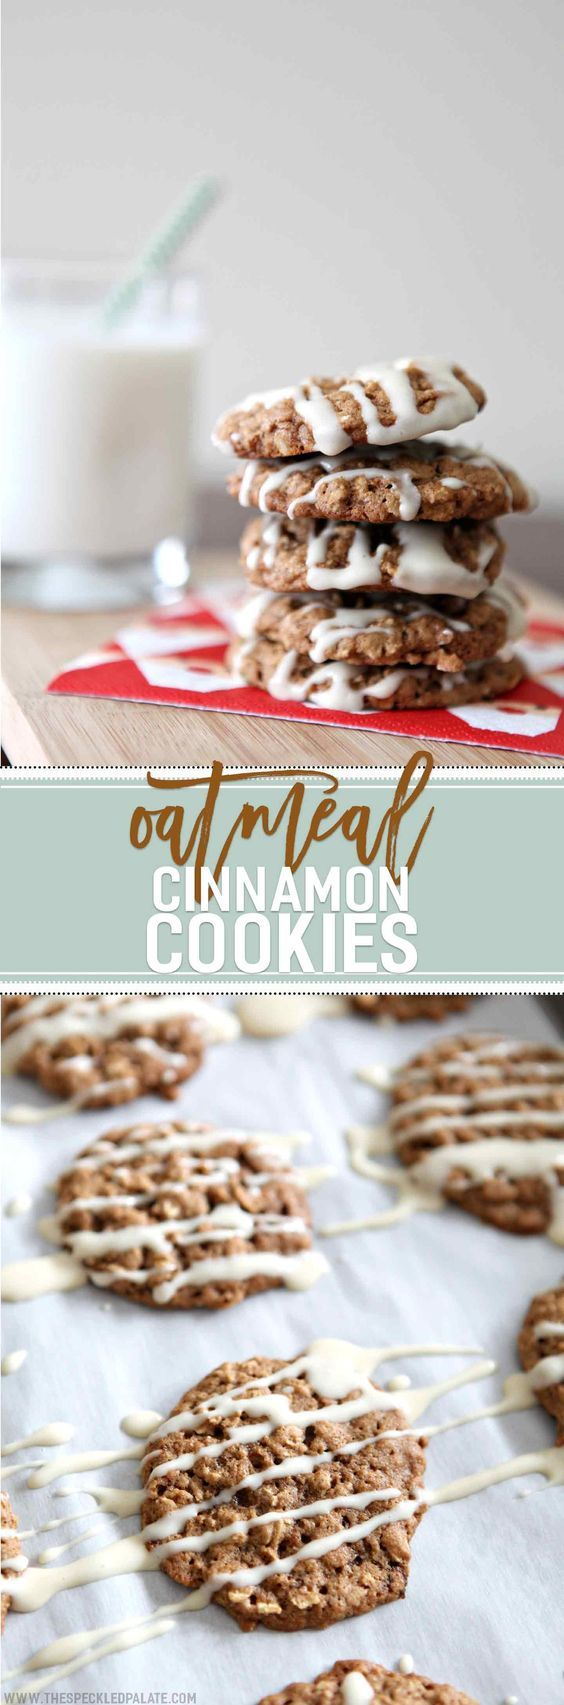 Oatmeal Cinnamon Cookies with Maple Cream Cheese Glaze | Recipe